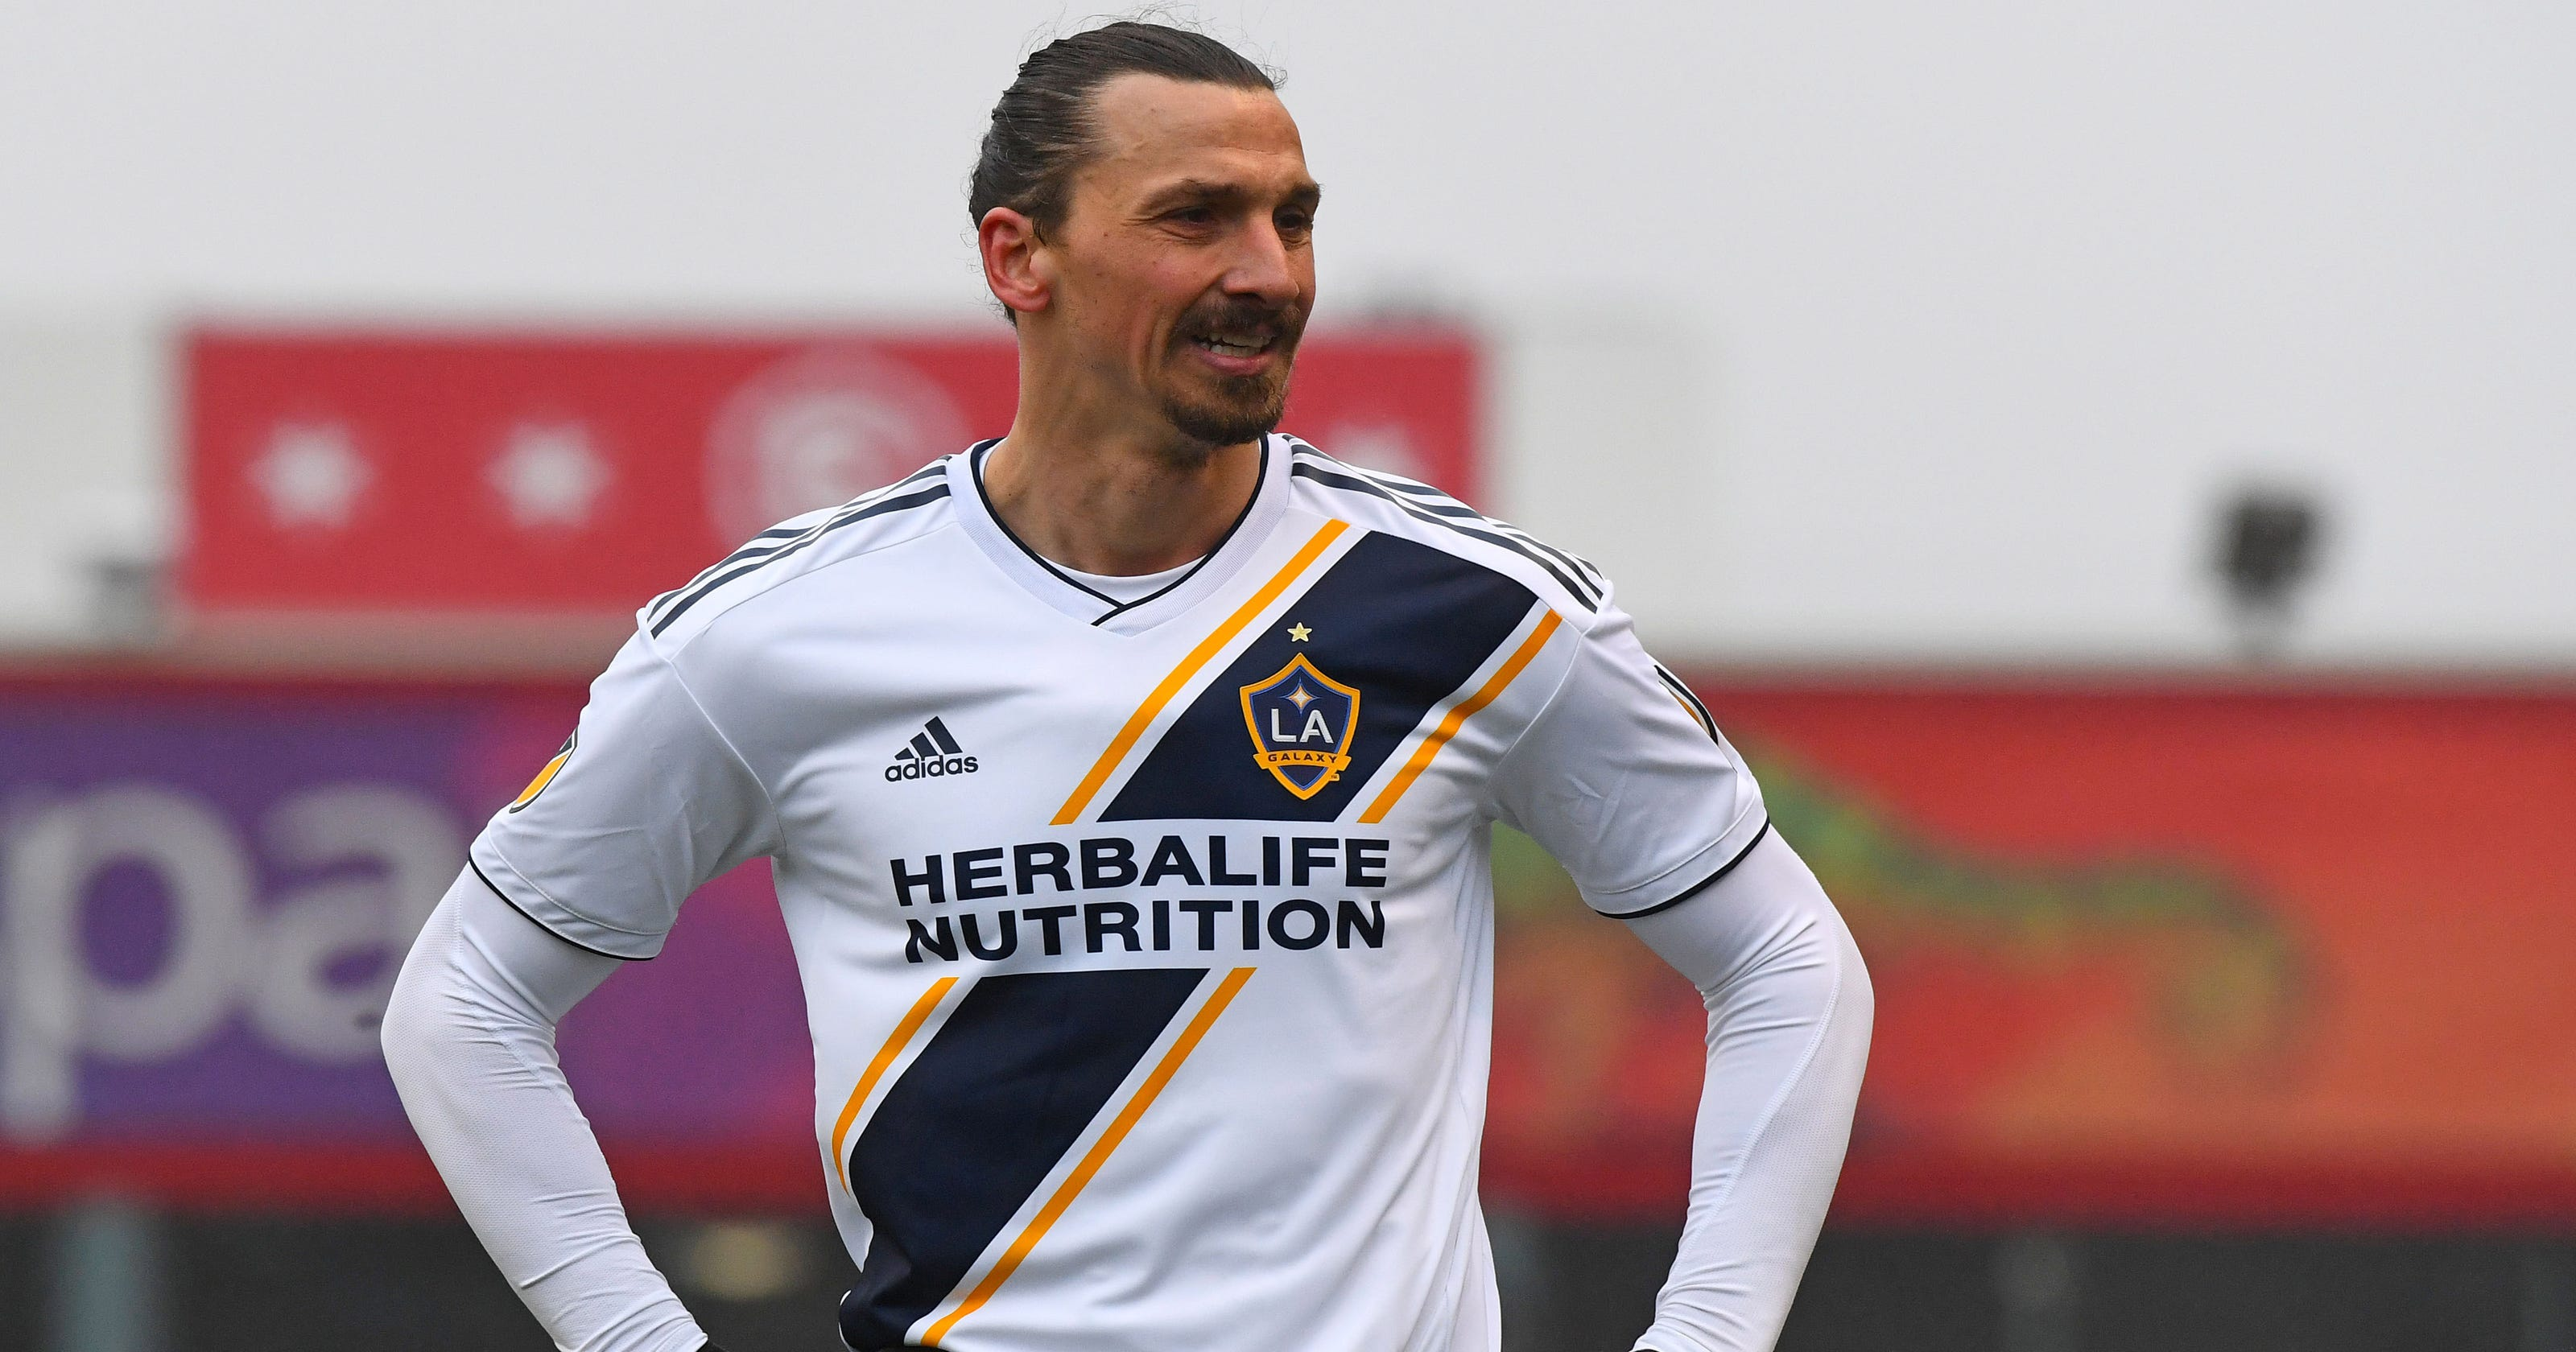 d8c4b7ae644 LA Galaxy s Zlatan Ibrahimovic gets big endorsement deal for World Cup